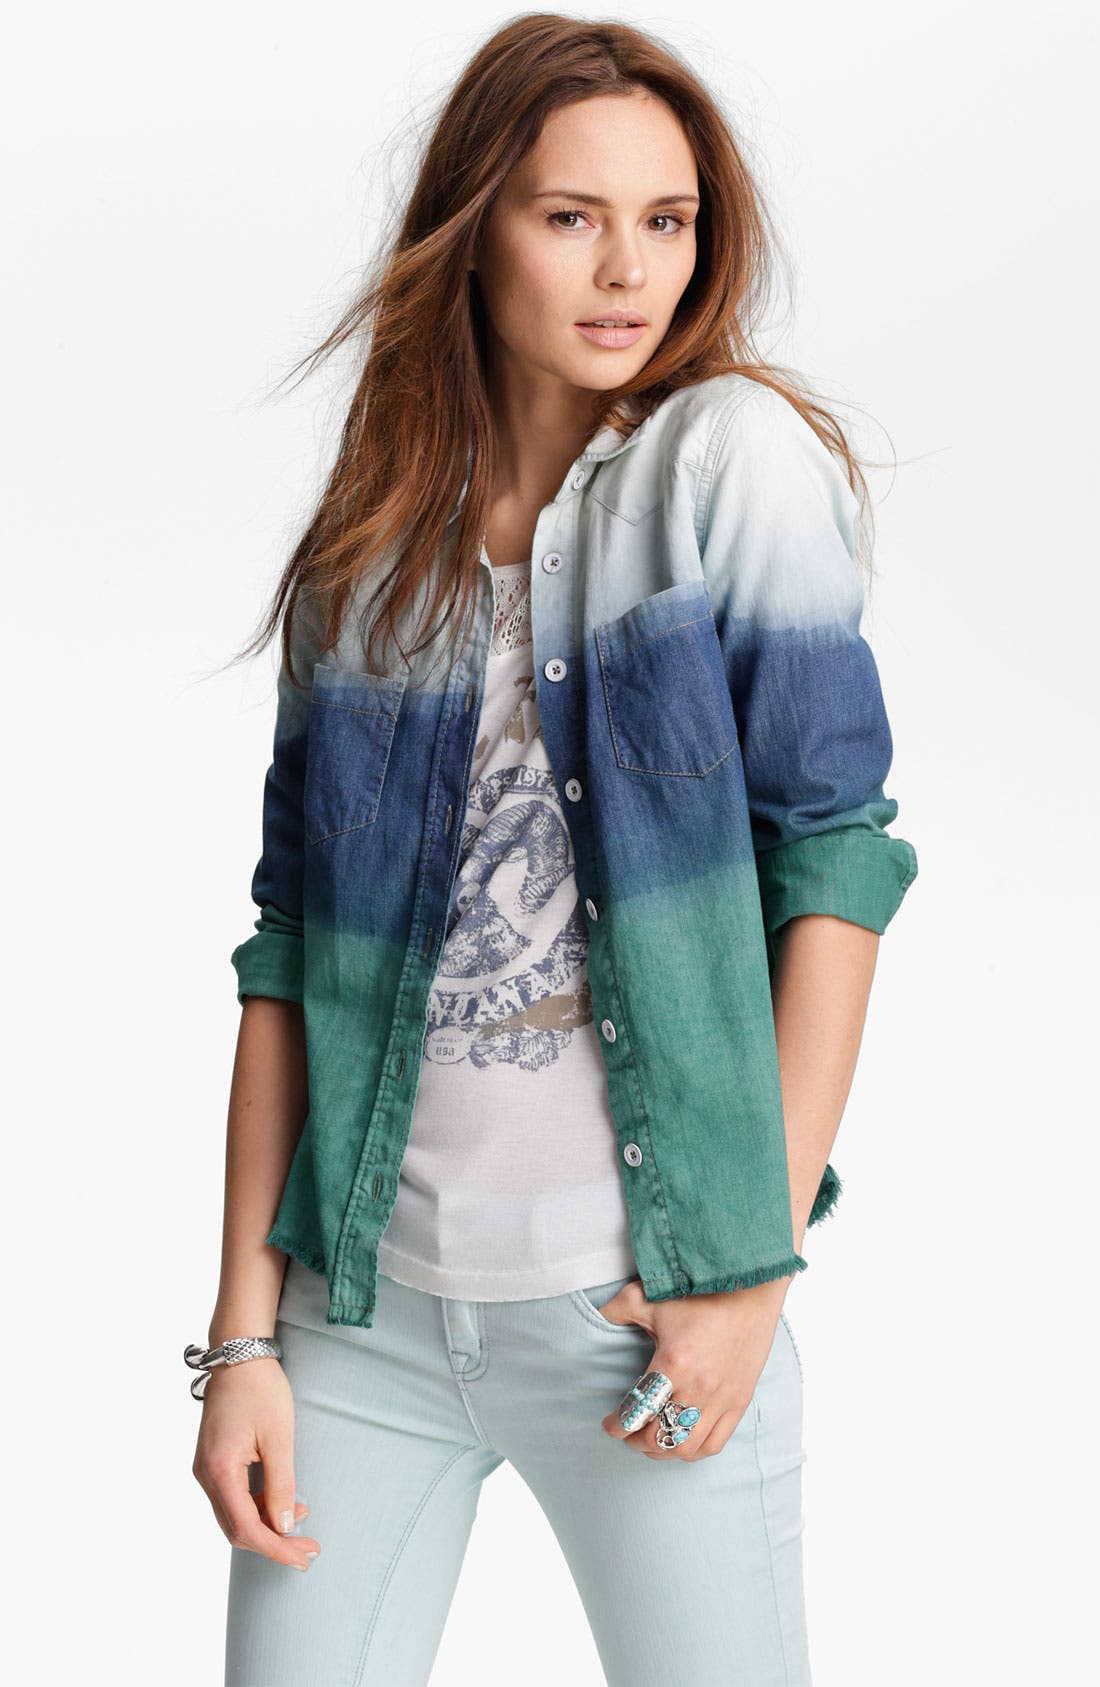 Alternate Image 1 Selected - Free People 'Before Sunrise' Ombré Cutoff Denim Shirt